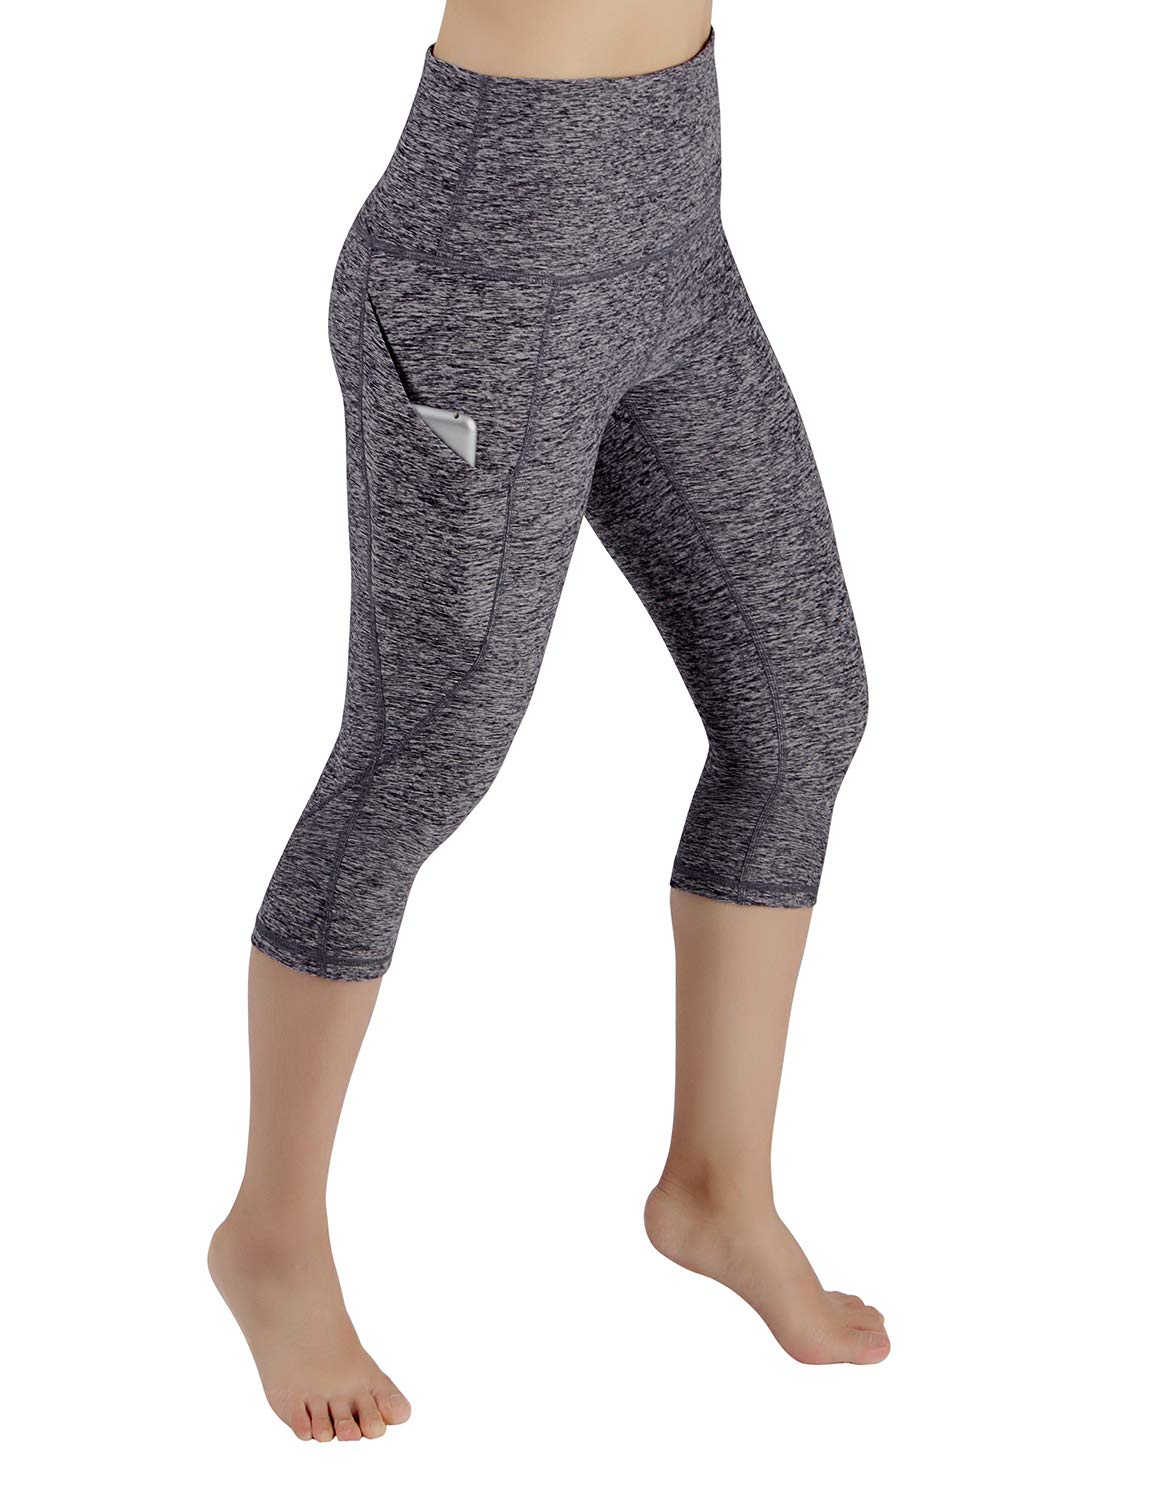 ODODOS High Waist Out Pocket Yoga Capris Pants Tummy Control Workout Running 4 Way Stretch Yoga Leggings,NavyHeather,X-Small by ODODOS (Image #1)